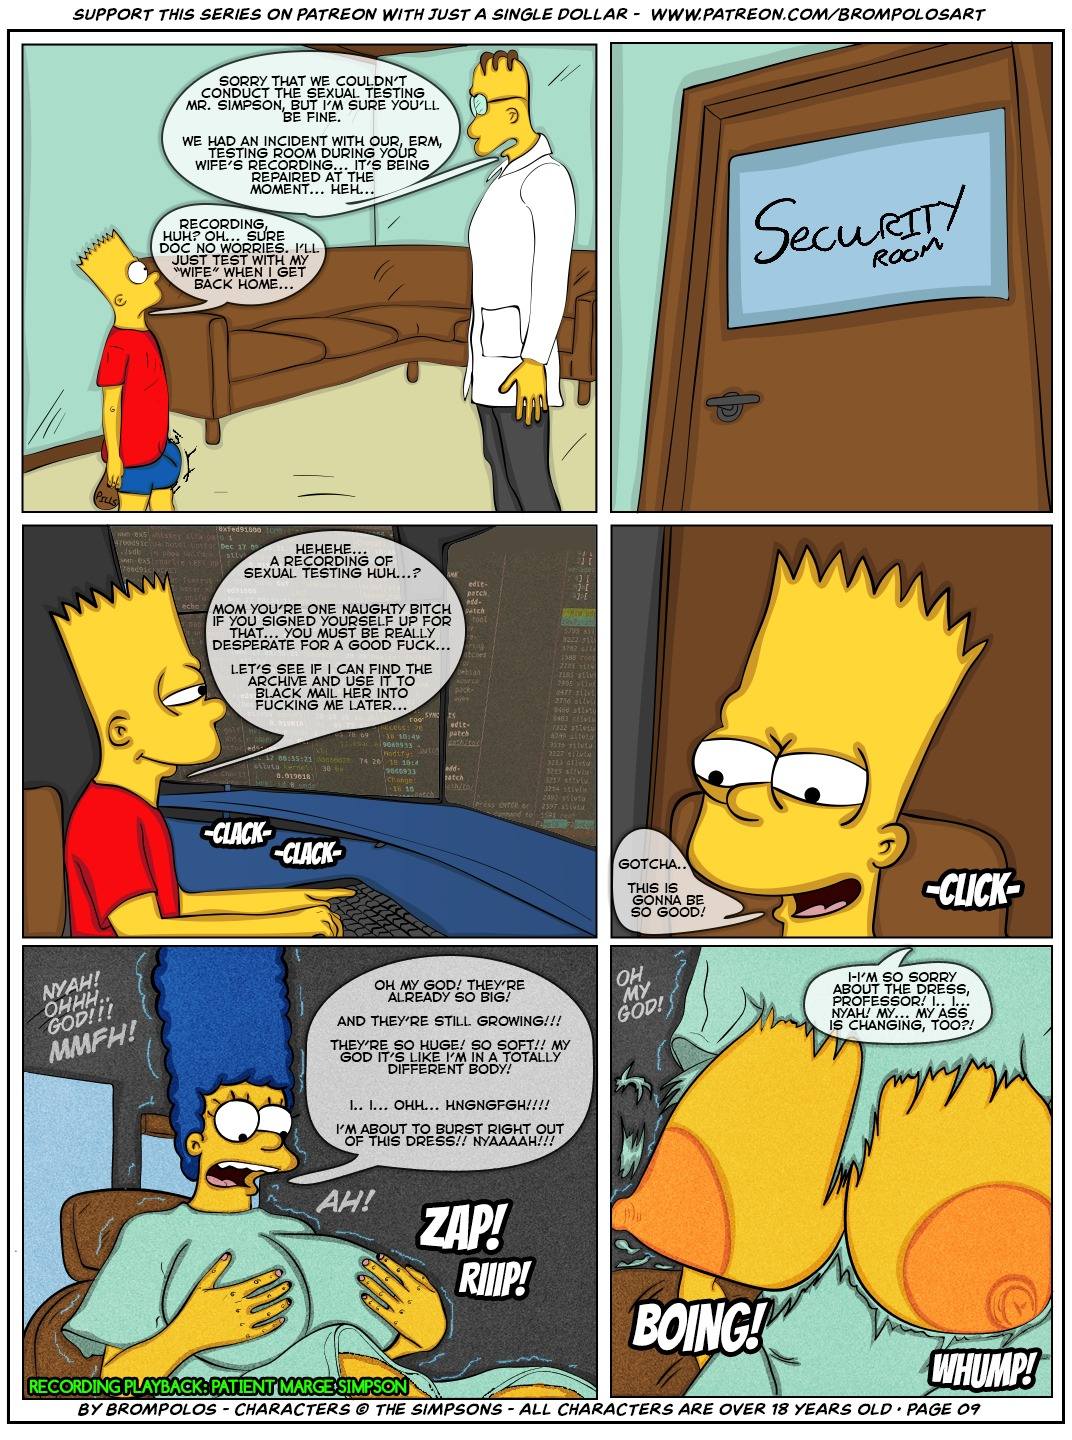 011 - The Simpsons are the sexenteins.